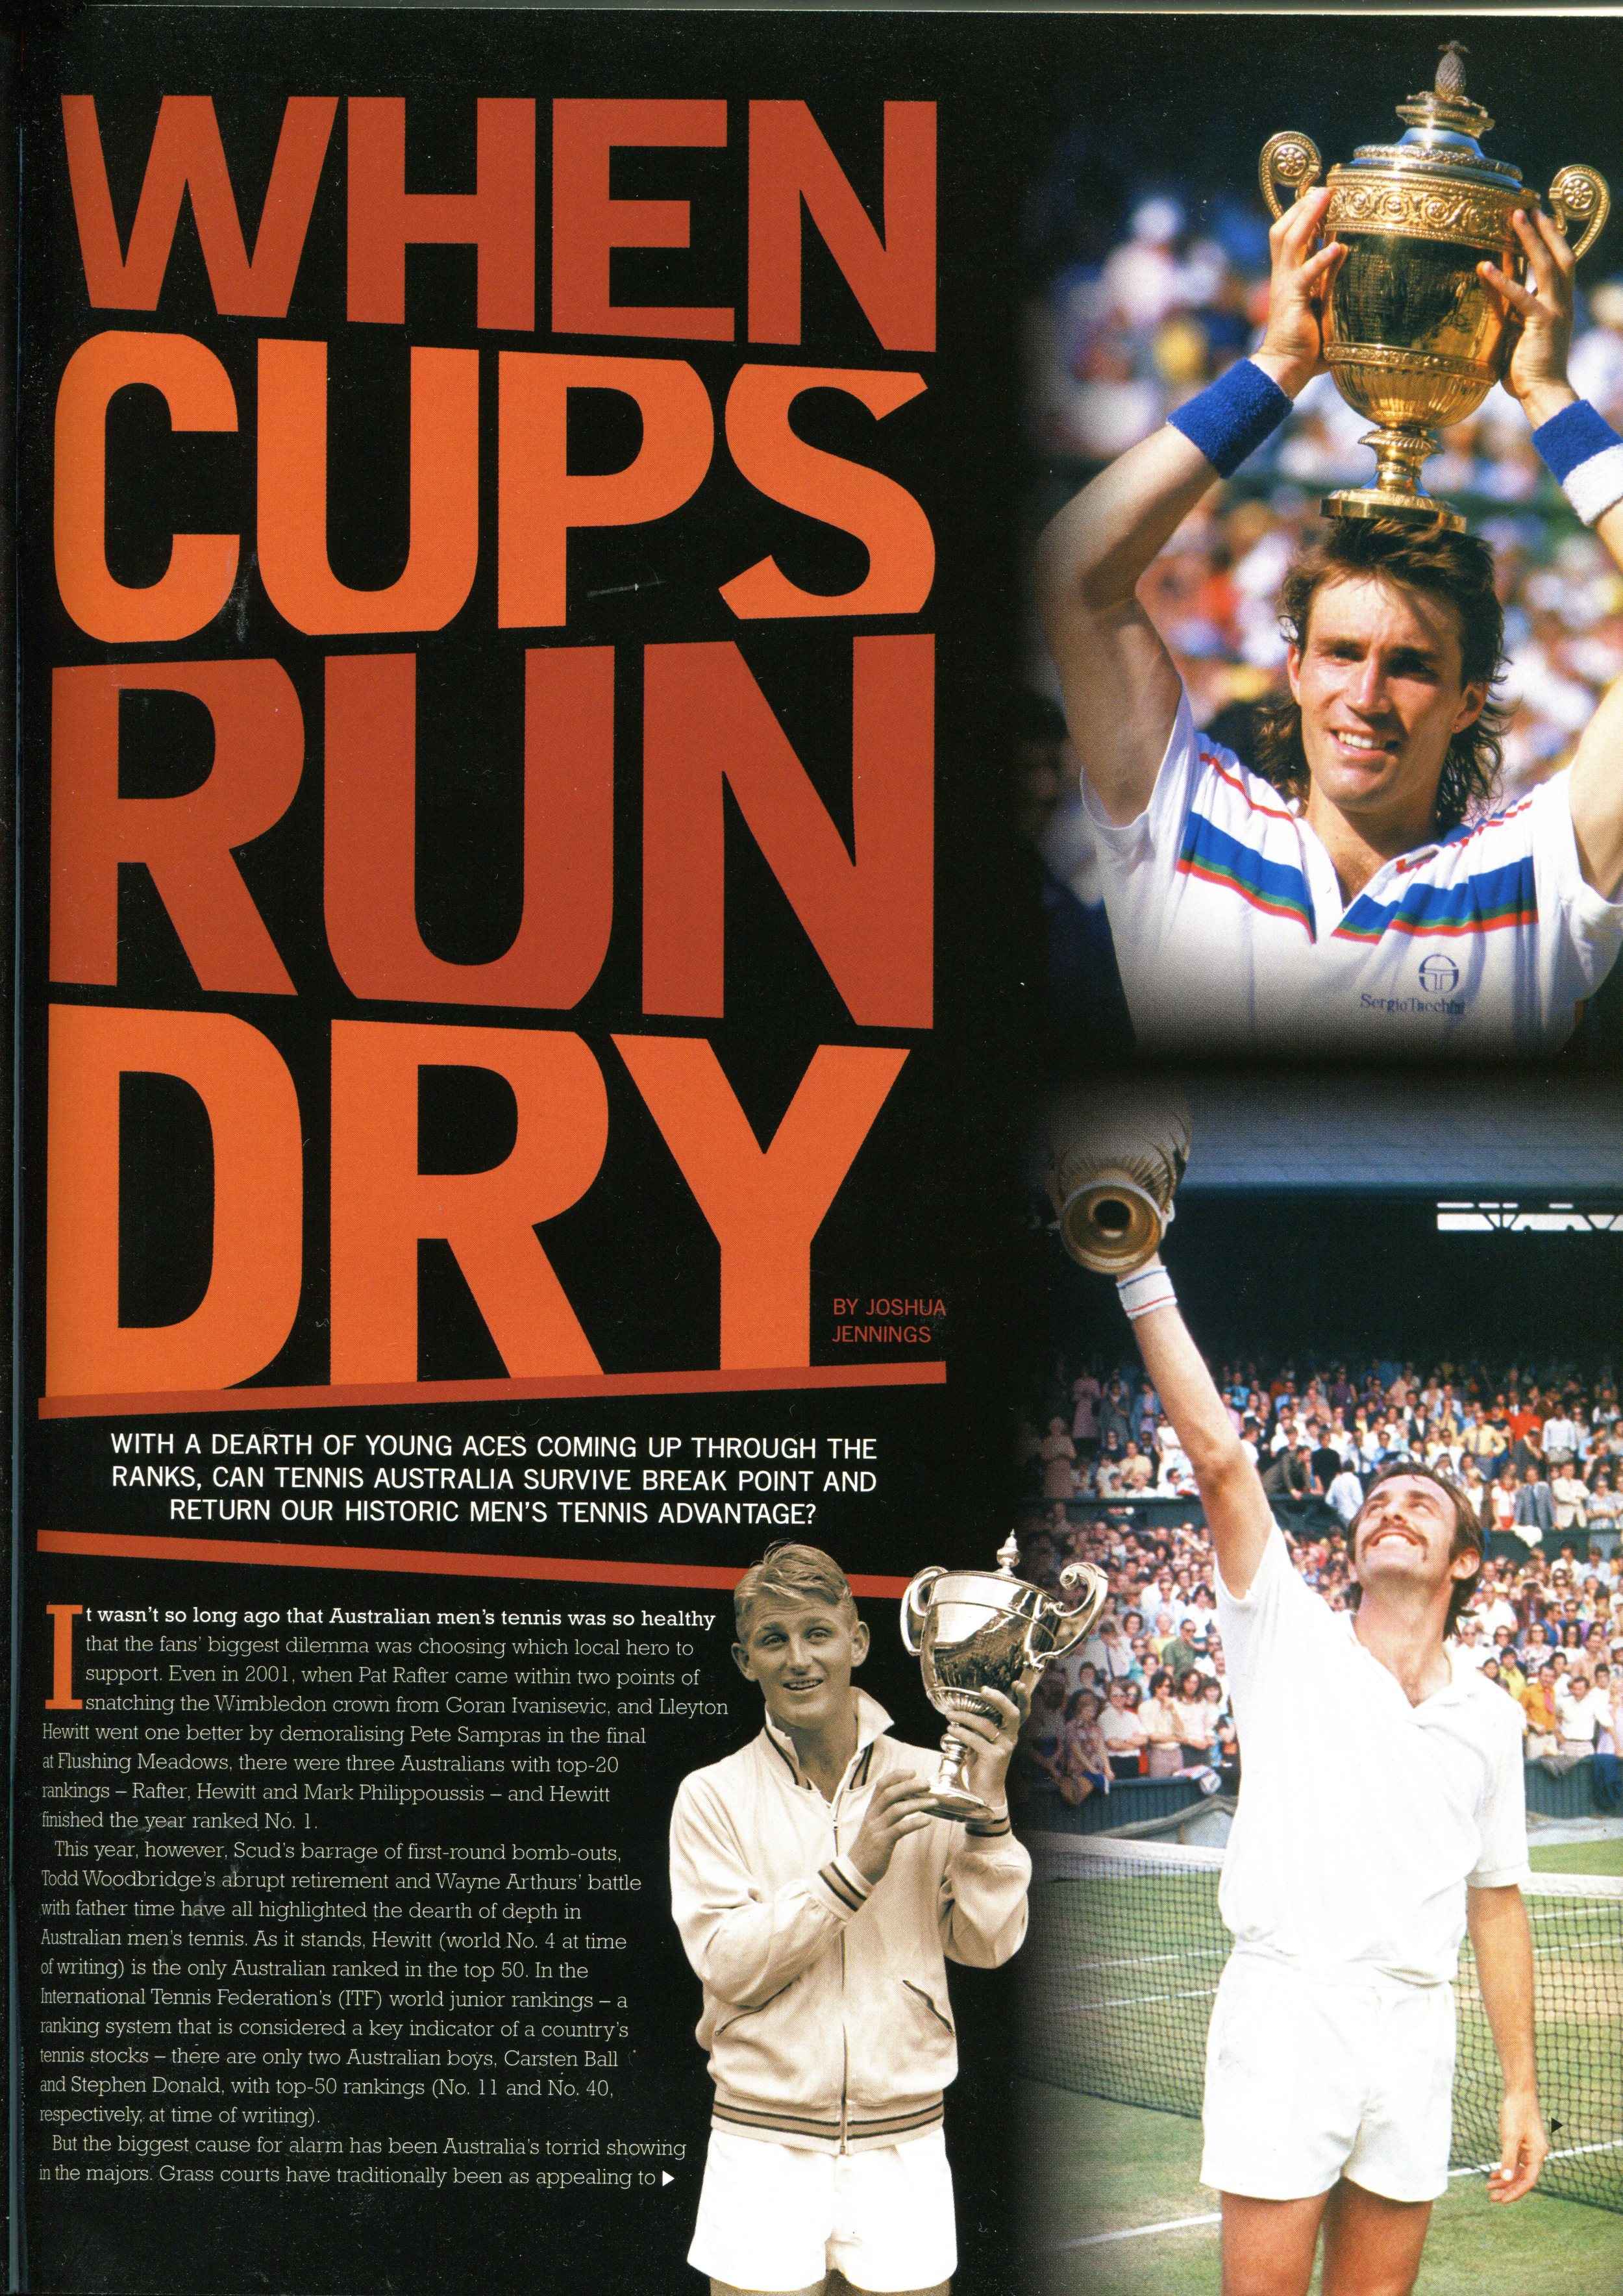 INSIDE SPORT NOVEMBER 2005 AUSTRALIAN TENNIS FUTURE FEATURE (3).jpg